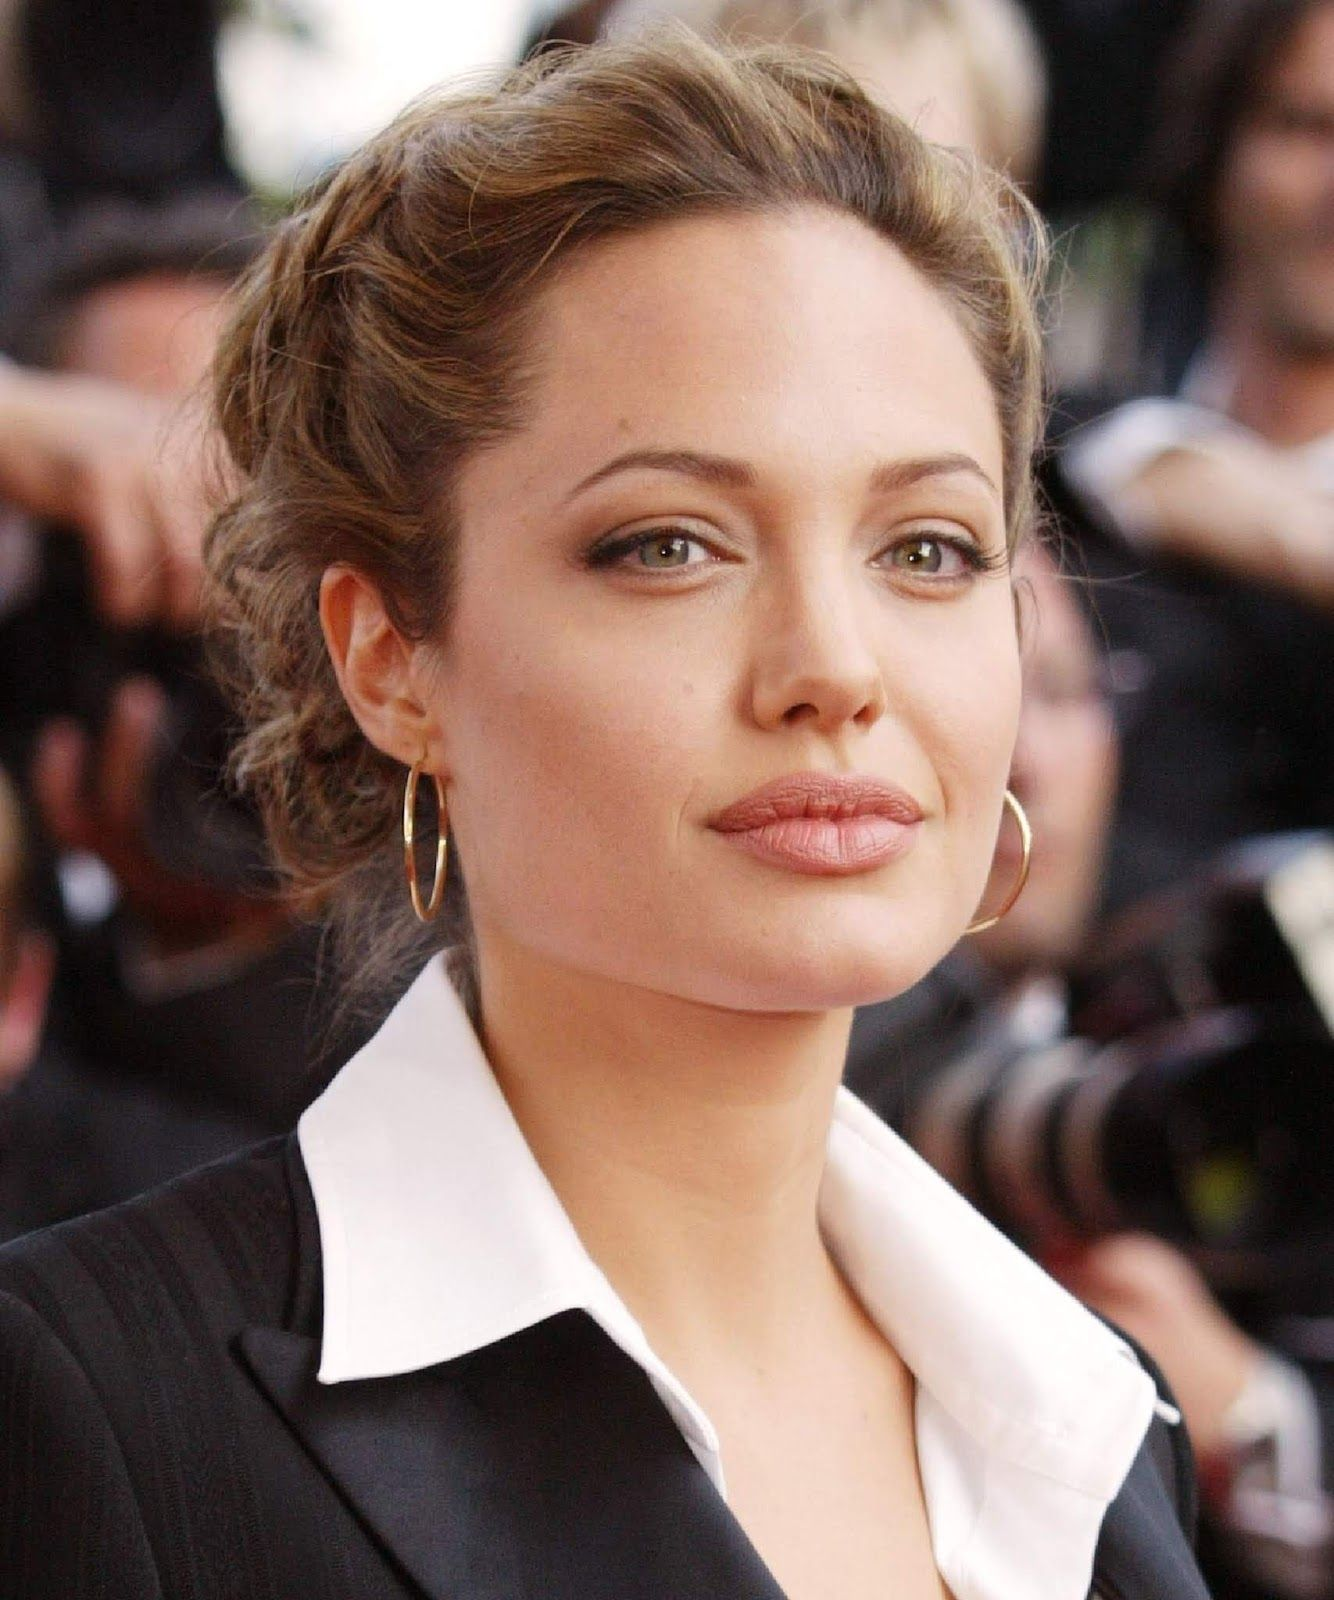 Angelina Jolie asks Congress to help families with food problems